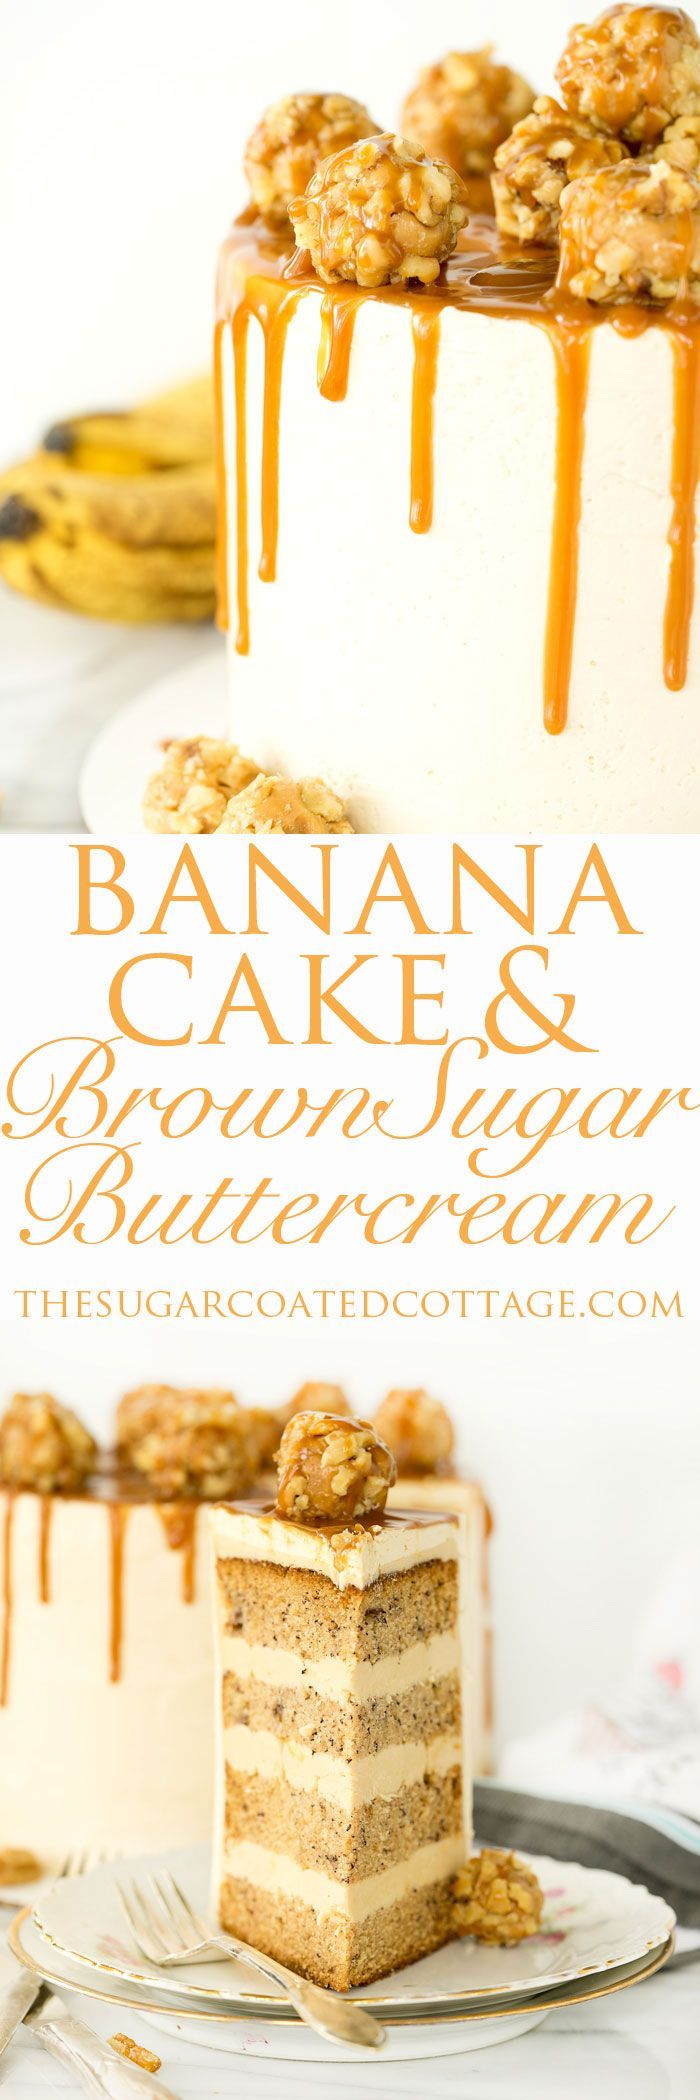 Banana Cake With Brown Sugar Swiss Meringue Buttercream!! Moist, delicious banana cake combined with my favorite, brown sugar swiss meringue buttercream. The best banana cake recipe and buttercream recipe you'll ever need.   thesugarcoatedcottage.com